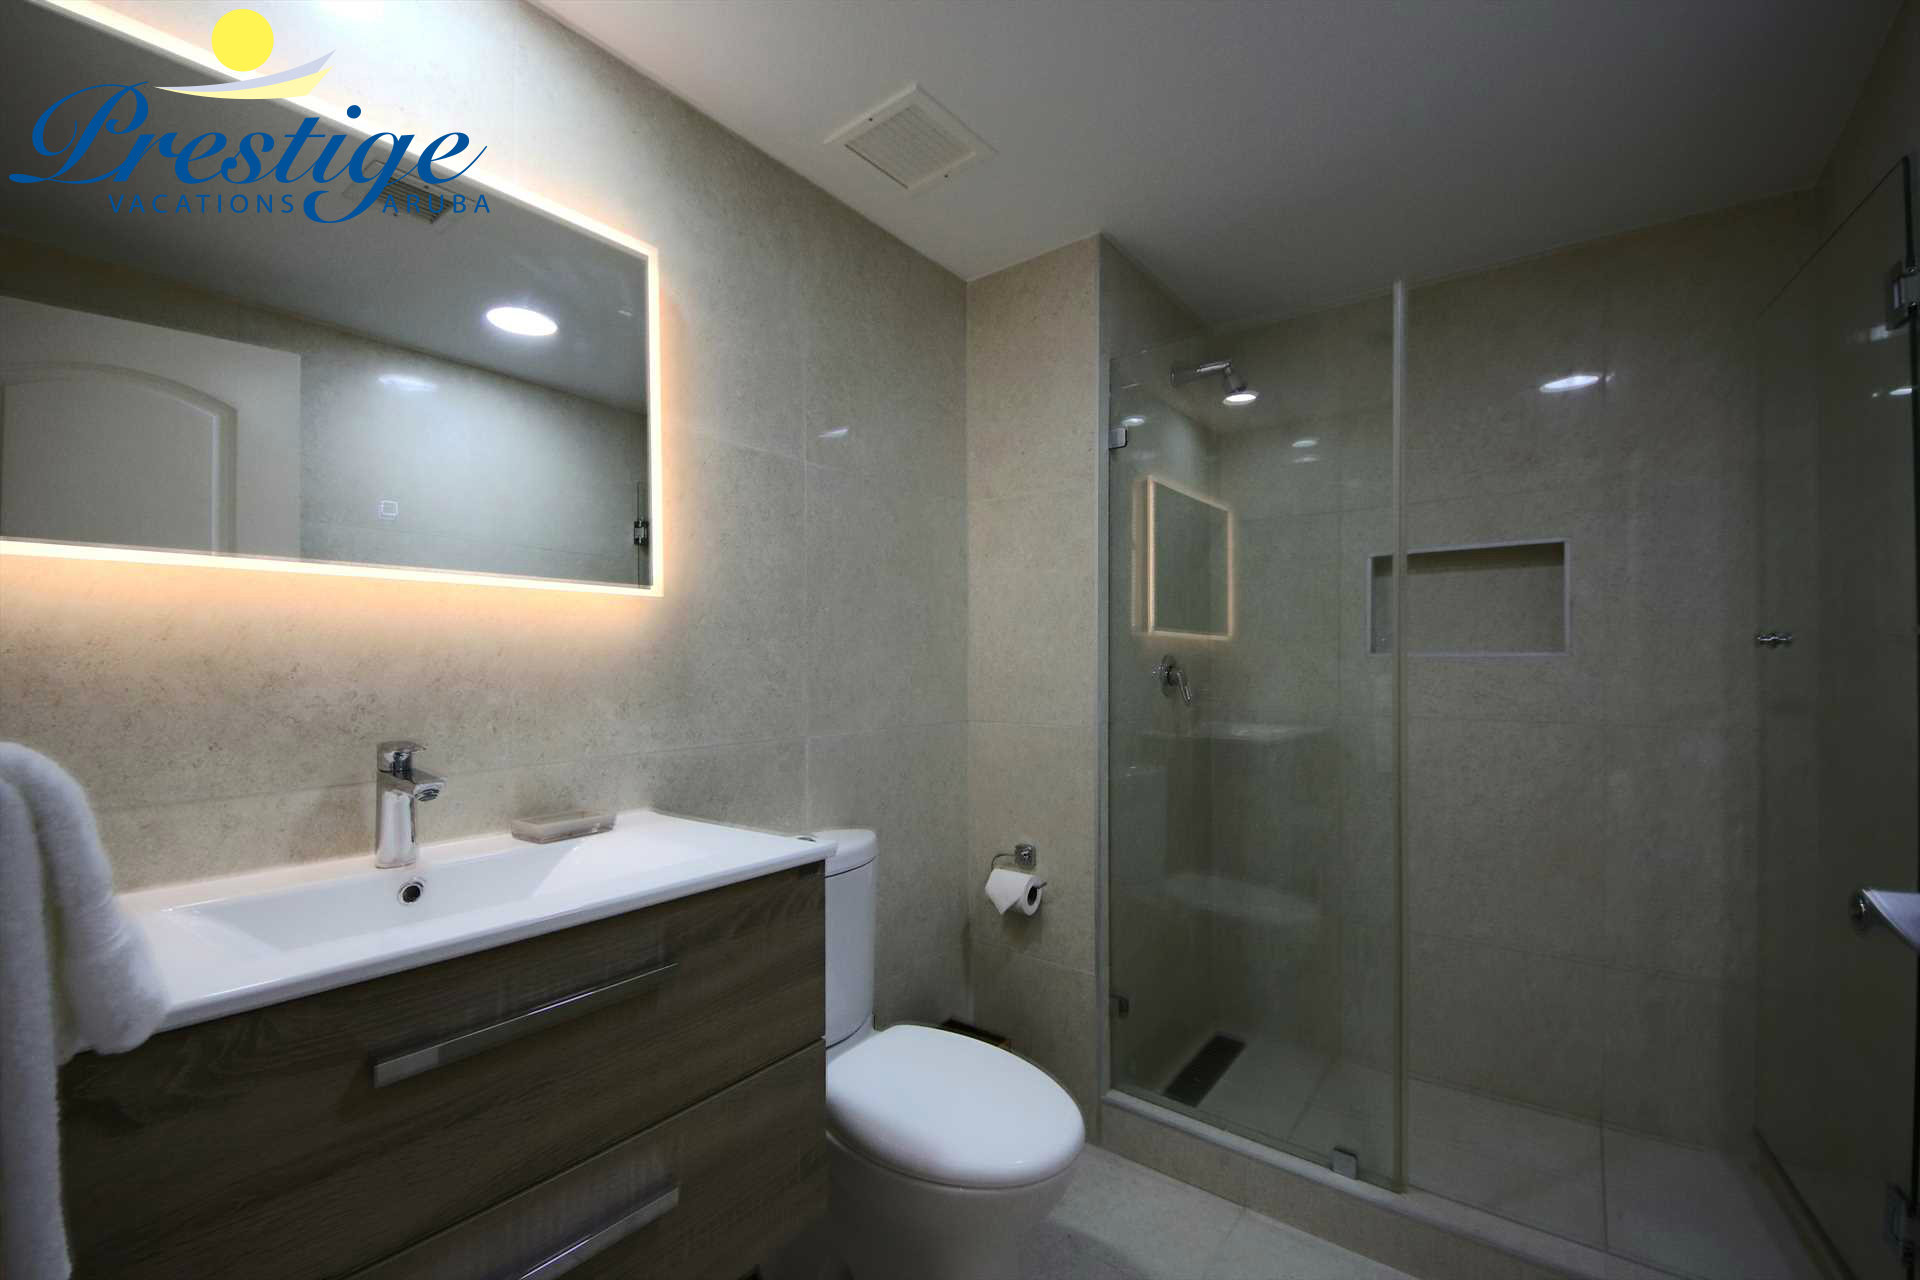 Second bathroom with shower in the hallway